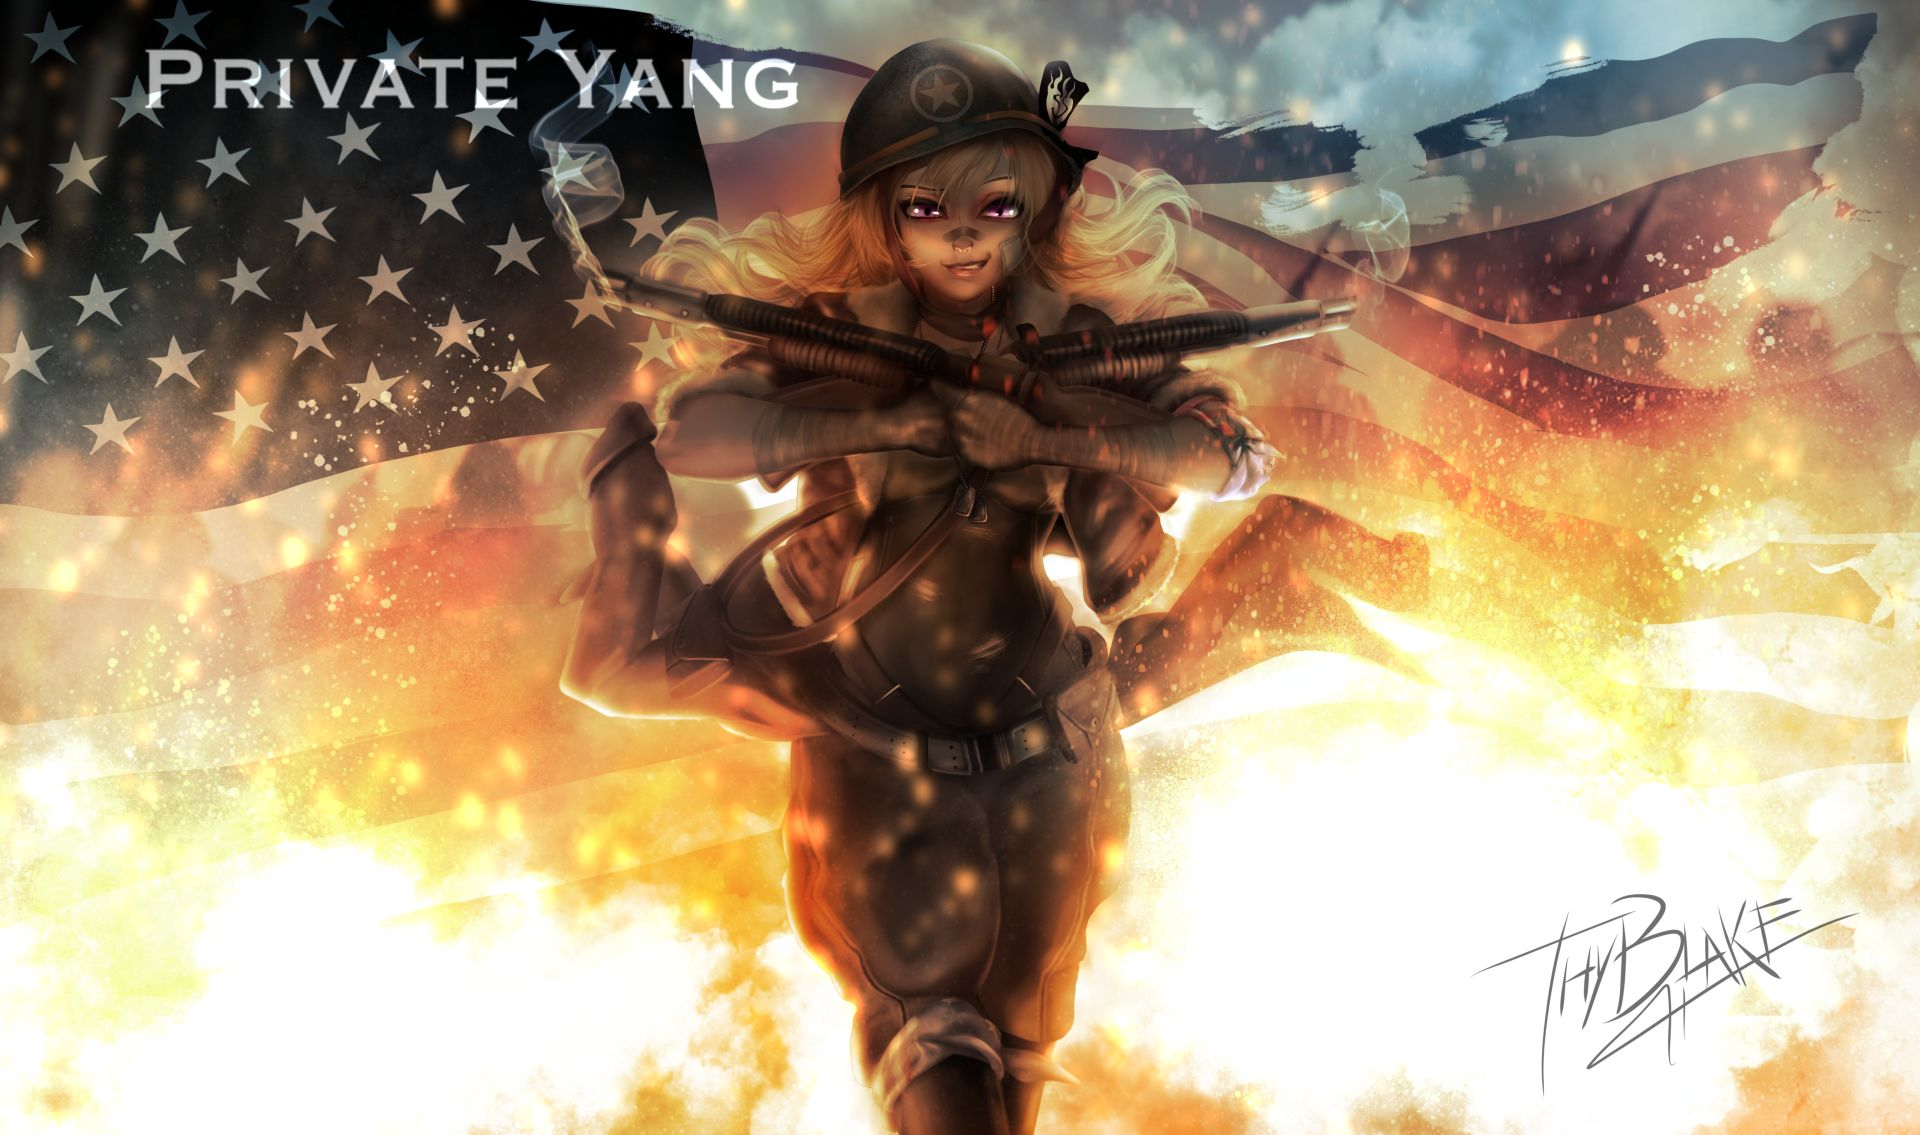 rwby__ww2_nations__usa___yang_by_thyblake_dccanjn.jpg